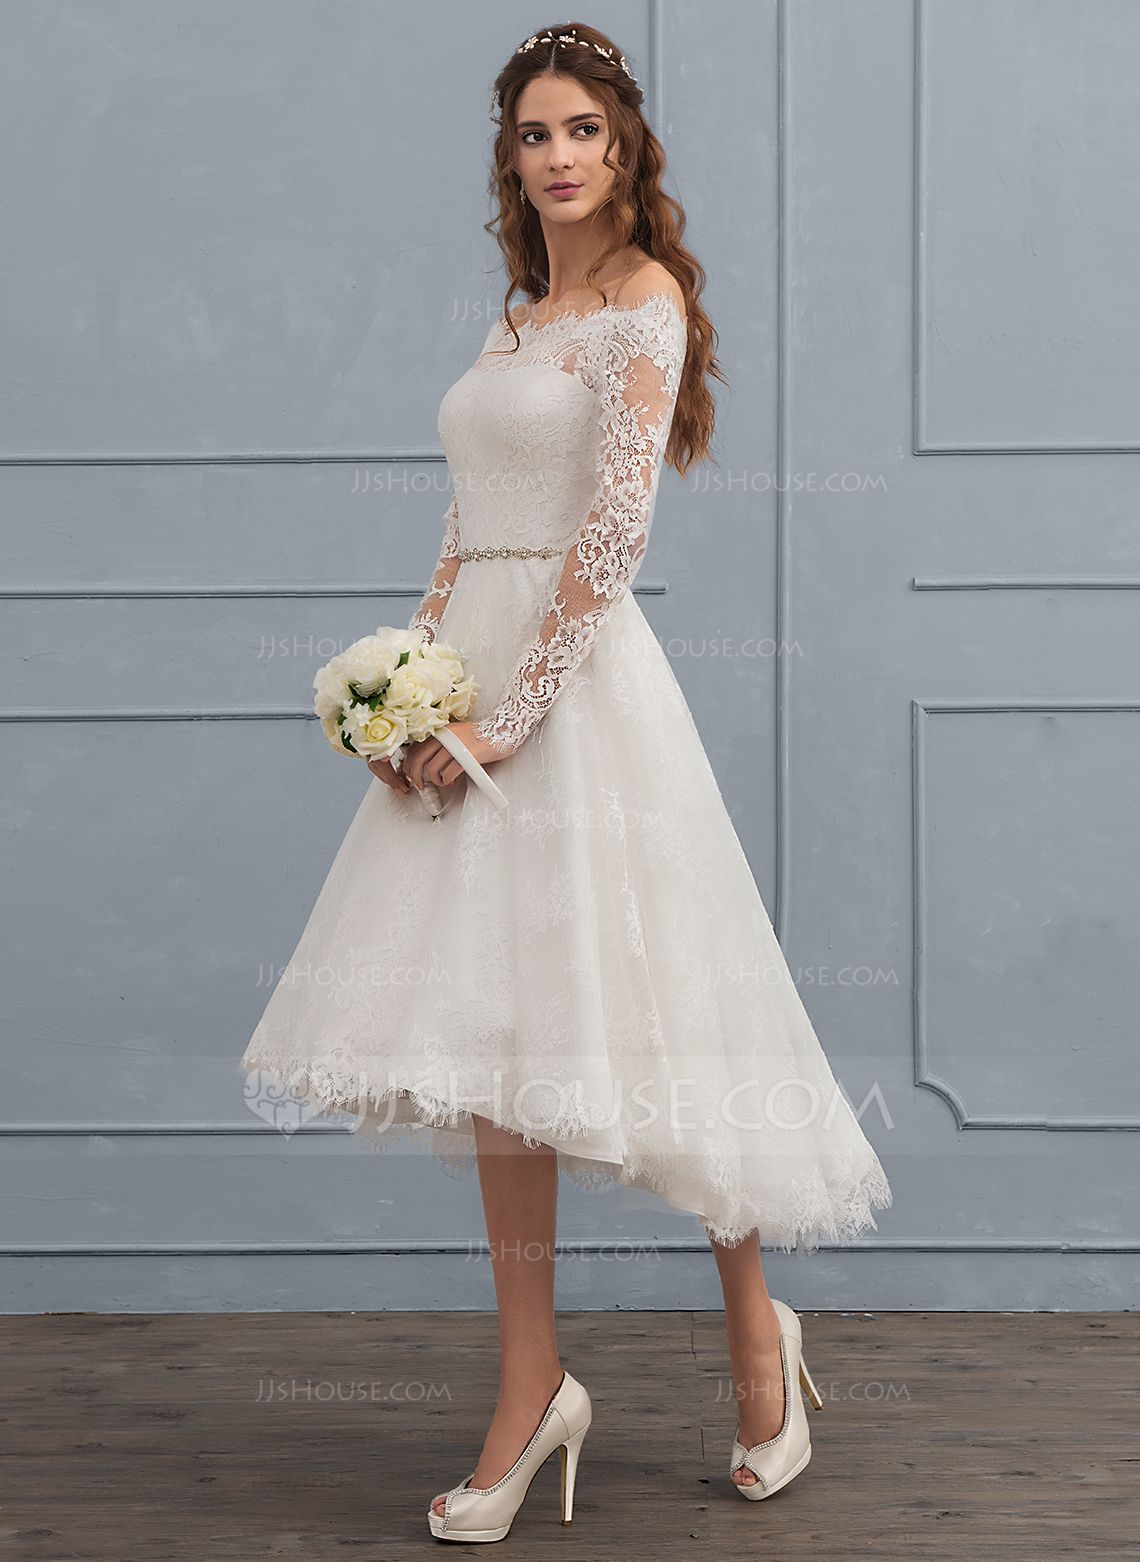 Unusual Vestido Novia Cortos Images - Wedding Ideas - memiocall.com